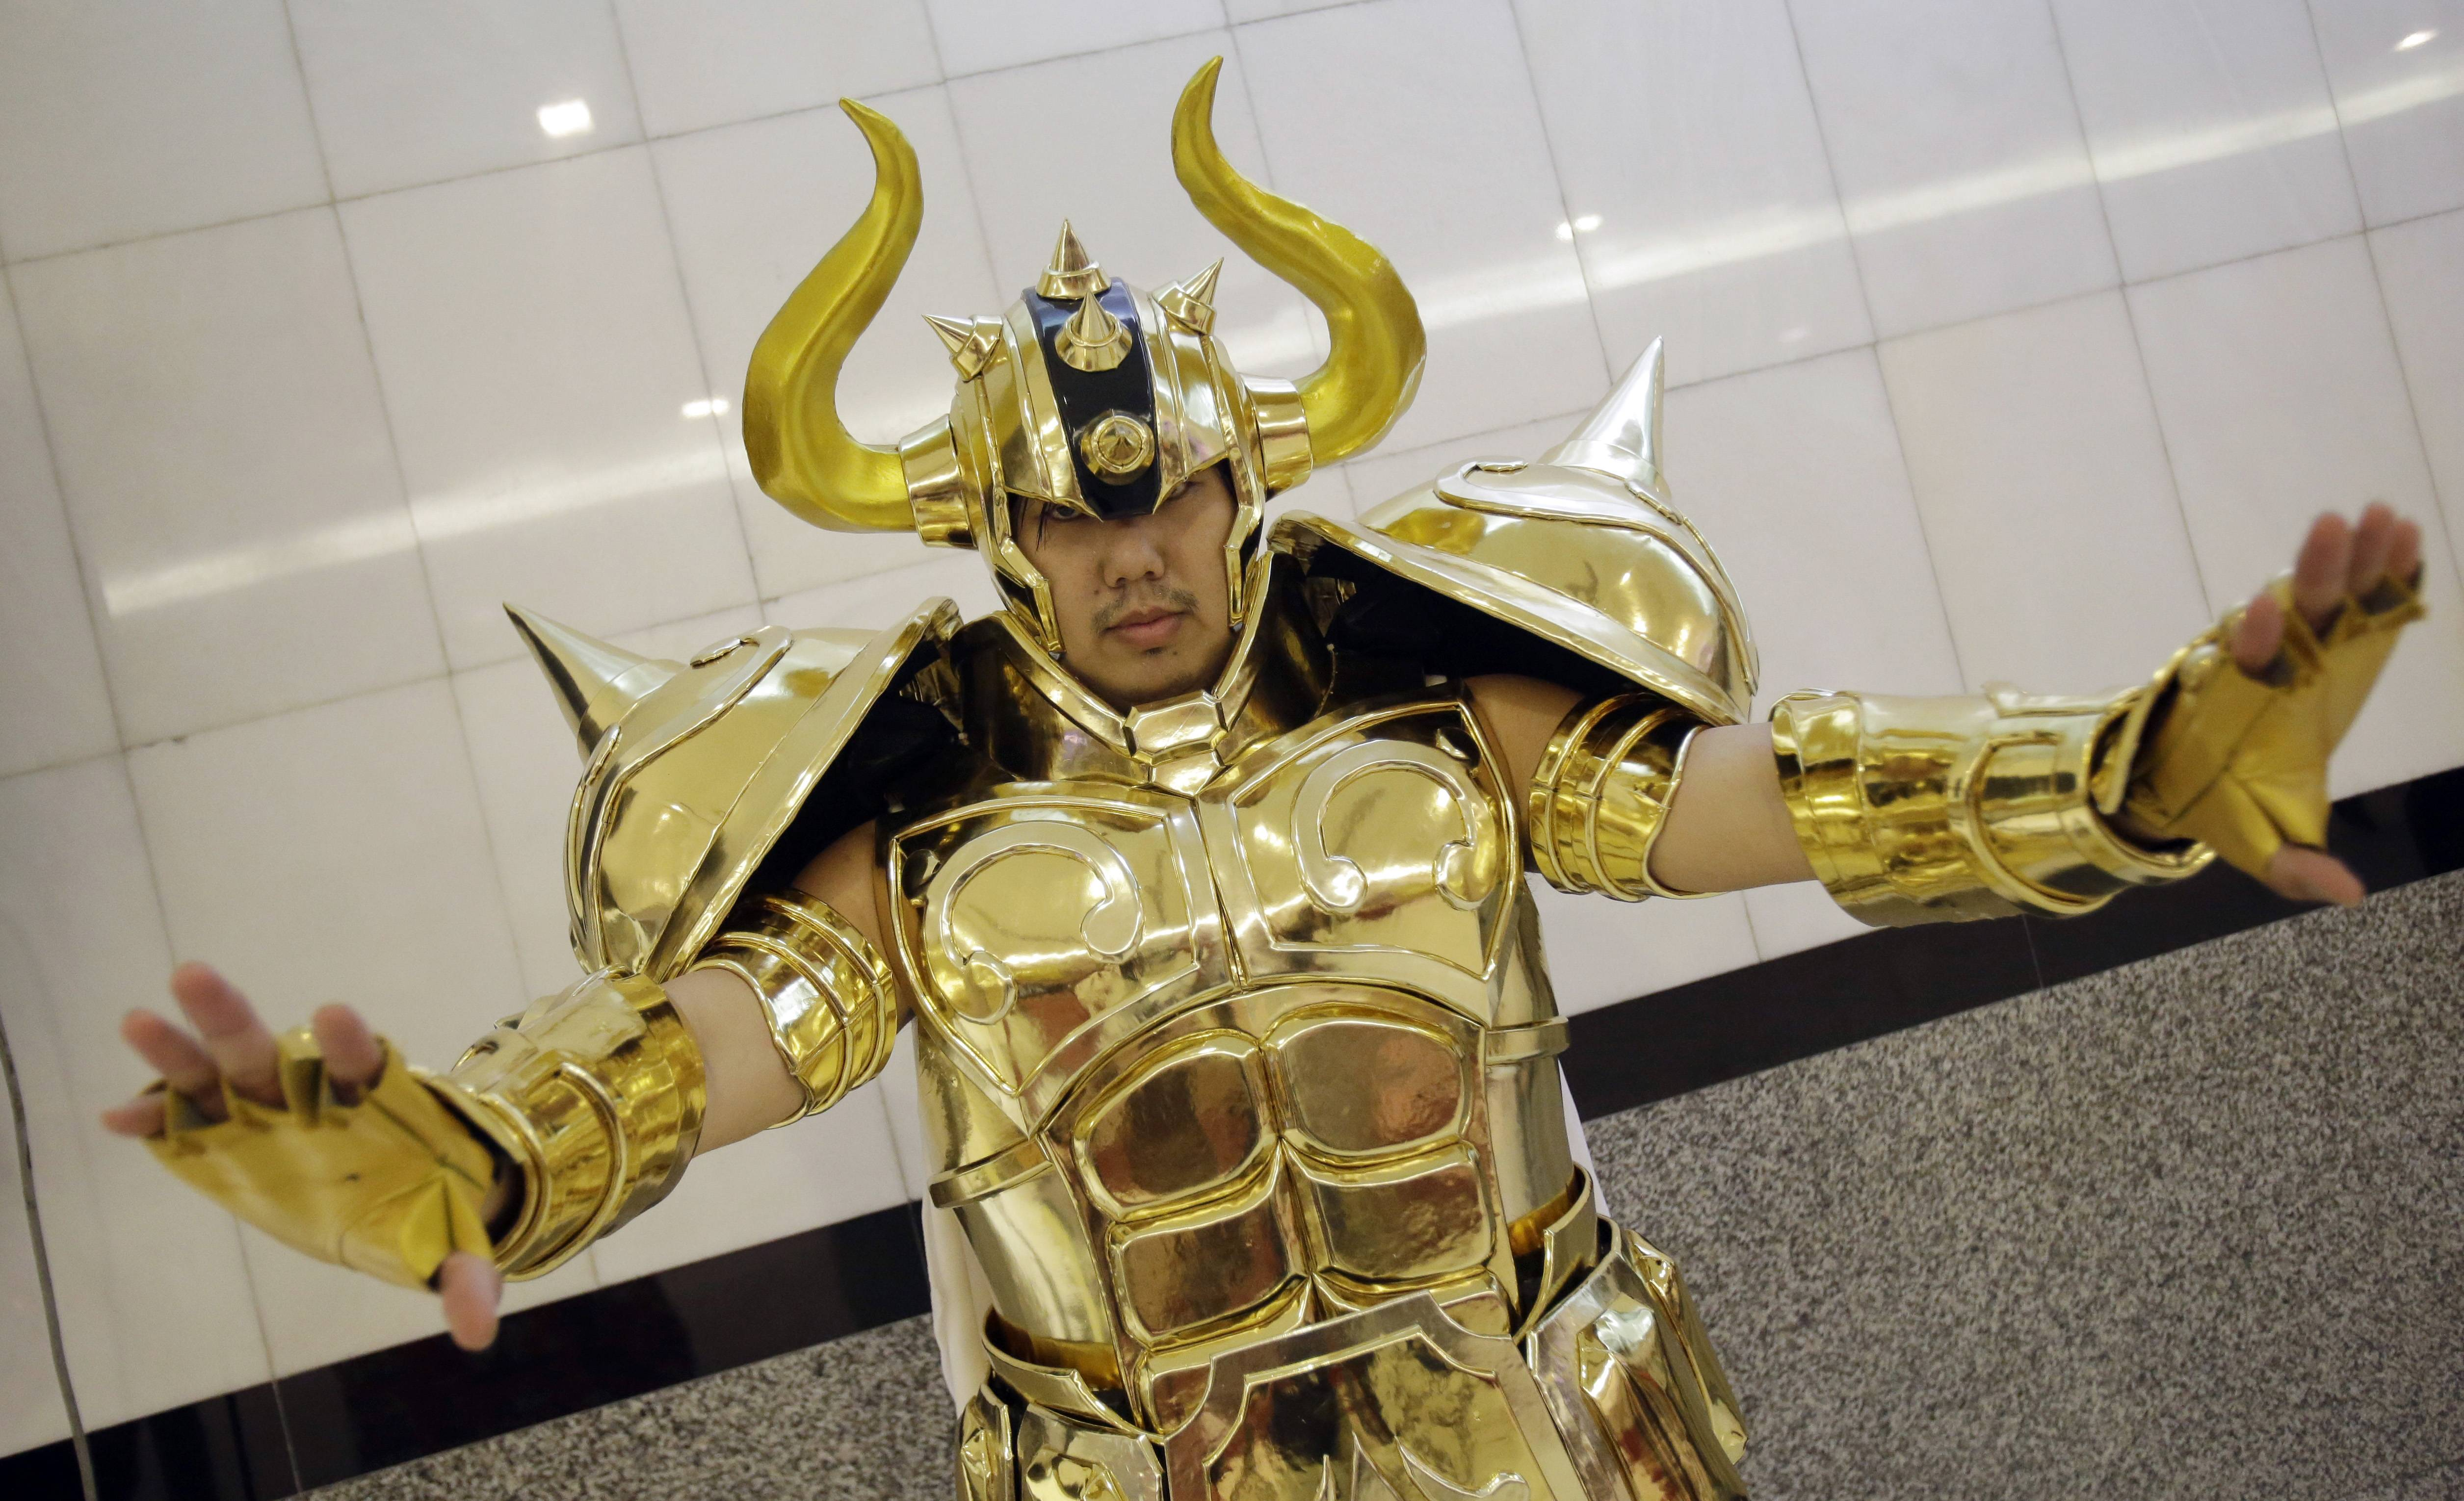 Marvel at the many cosplay outfits at Anime Central at the Donald E. Stephens Convention Center in Rosemont.